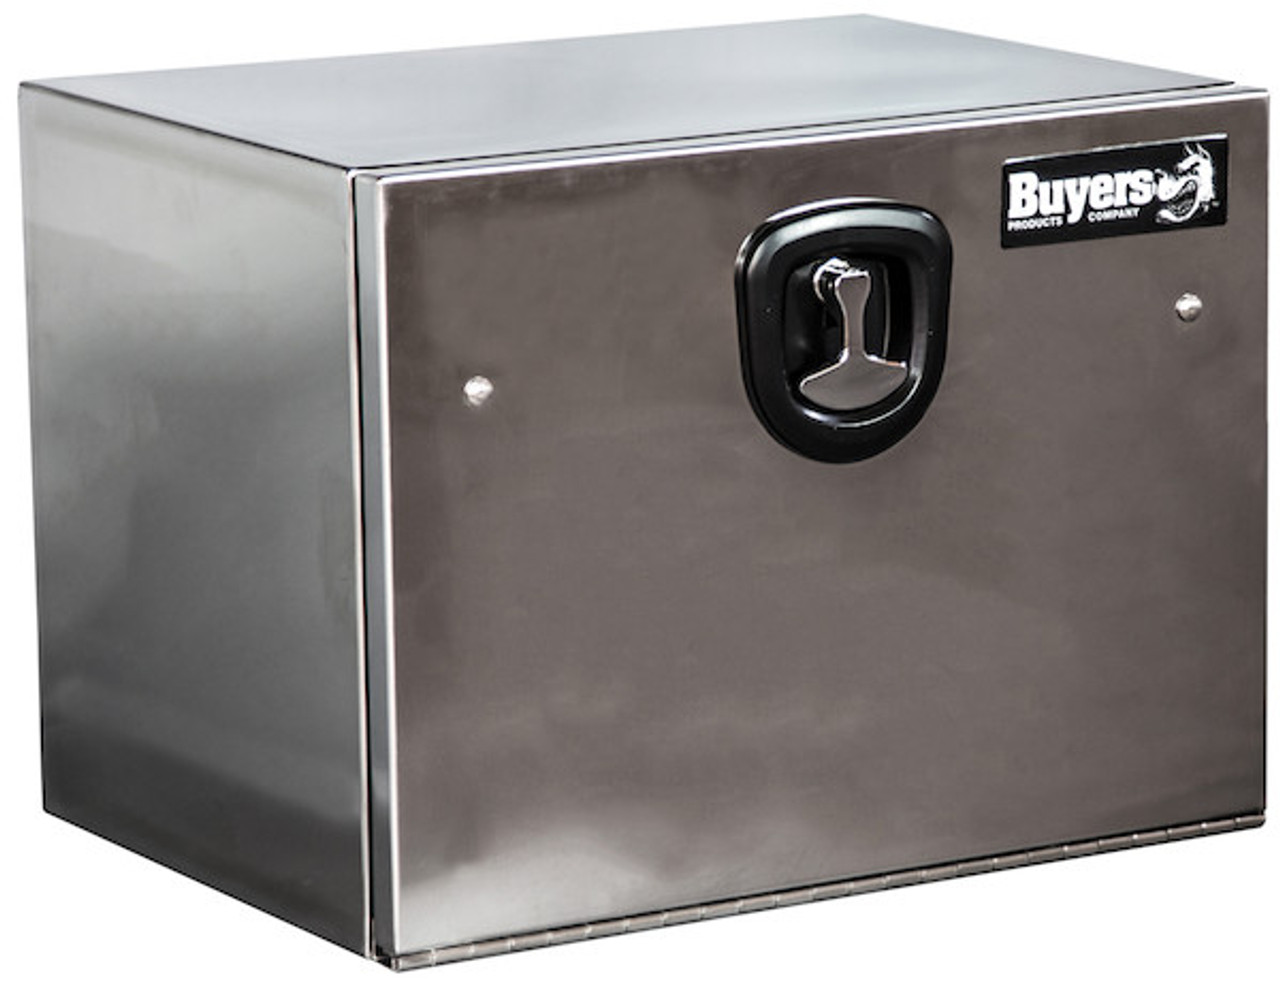 1702650 BUYERS PRODUCTS STAINLESS STEEL UNDERBODY TRUCK BOX TOOLBOX